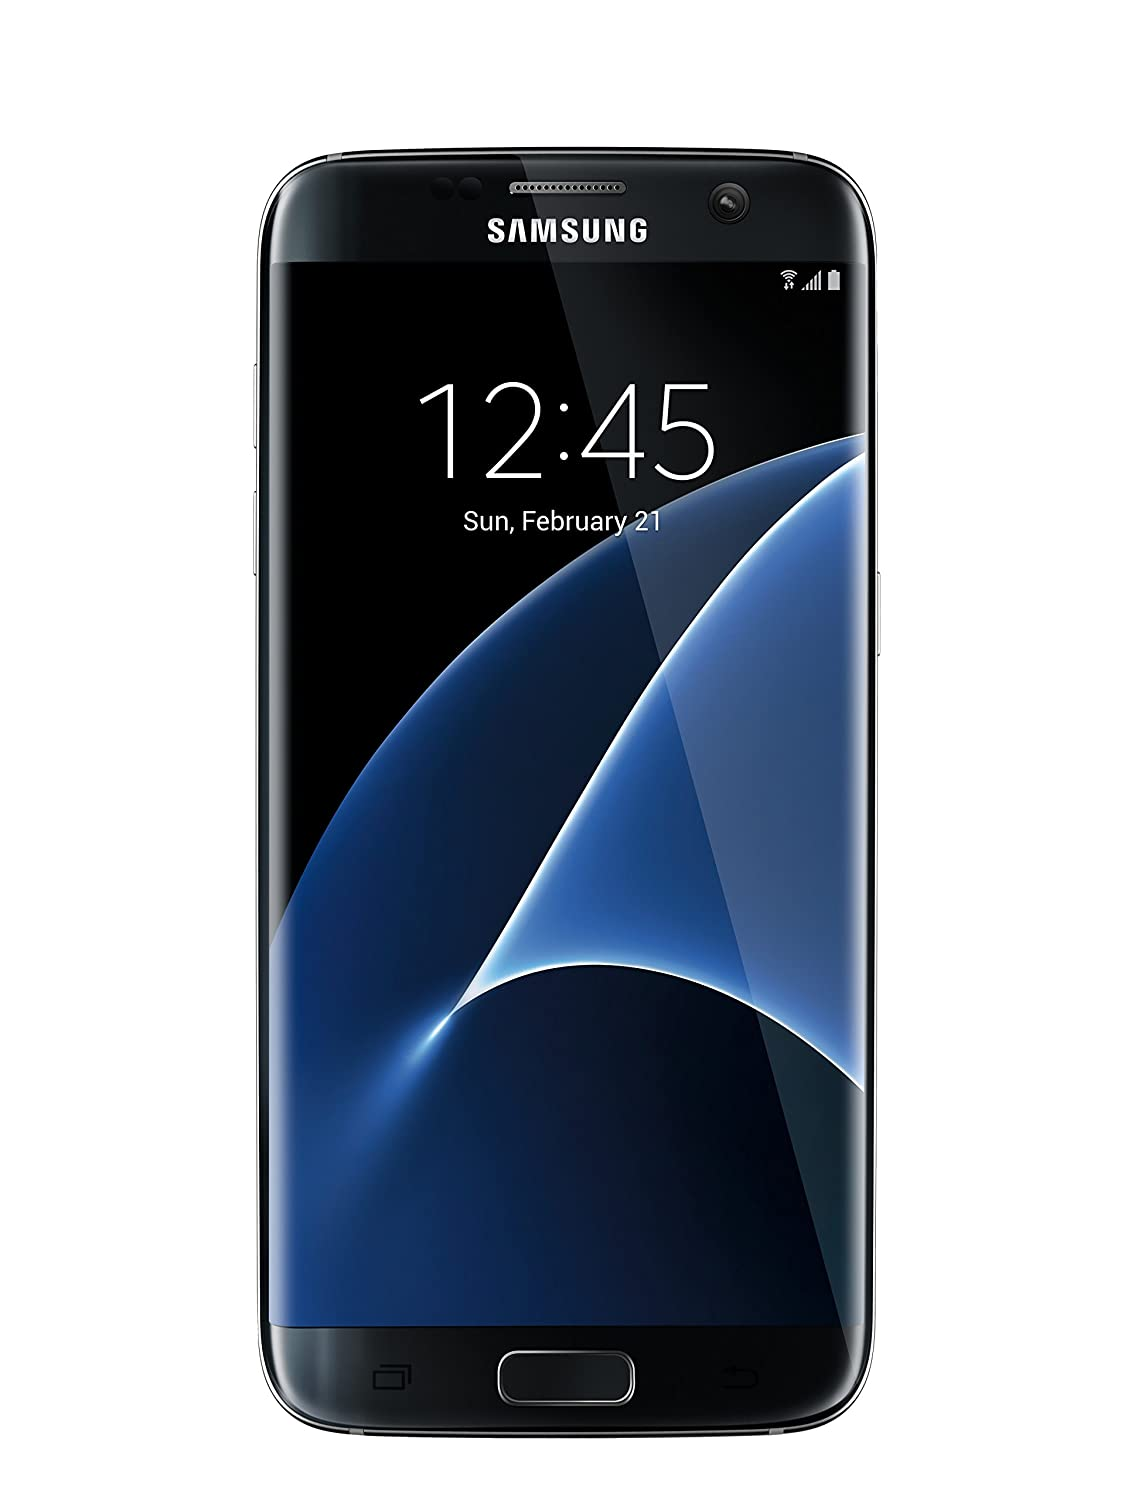 Samsung Galaxy S7 Edge 32 GB Unlocked Phone - G935FD Dual SIM - Black Oynx (International Version - No Warranty)